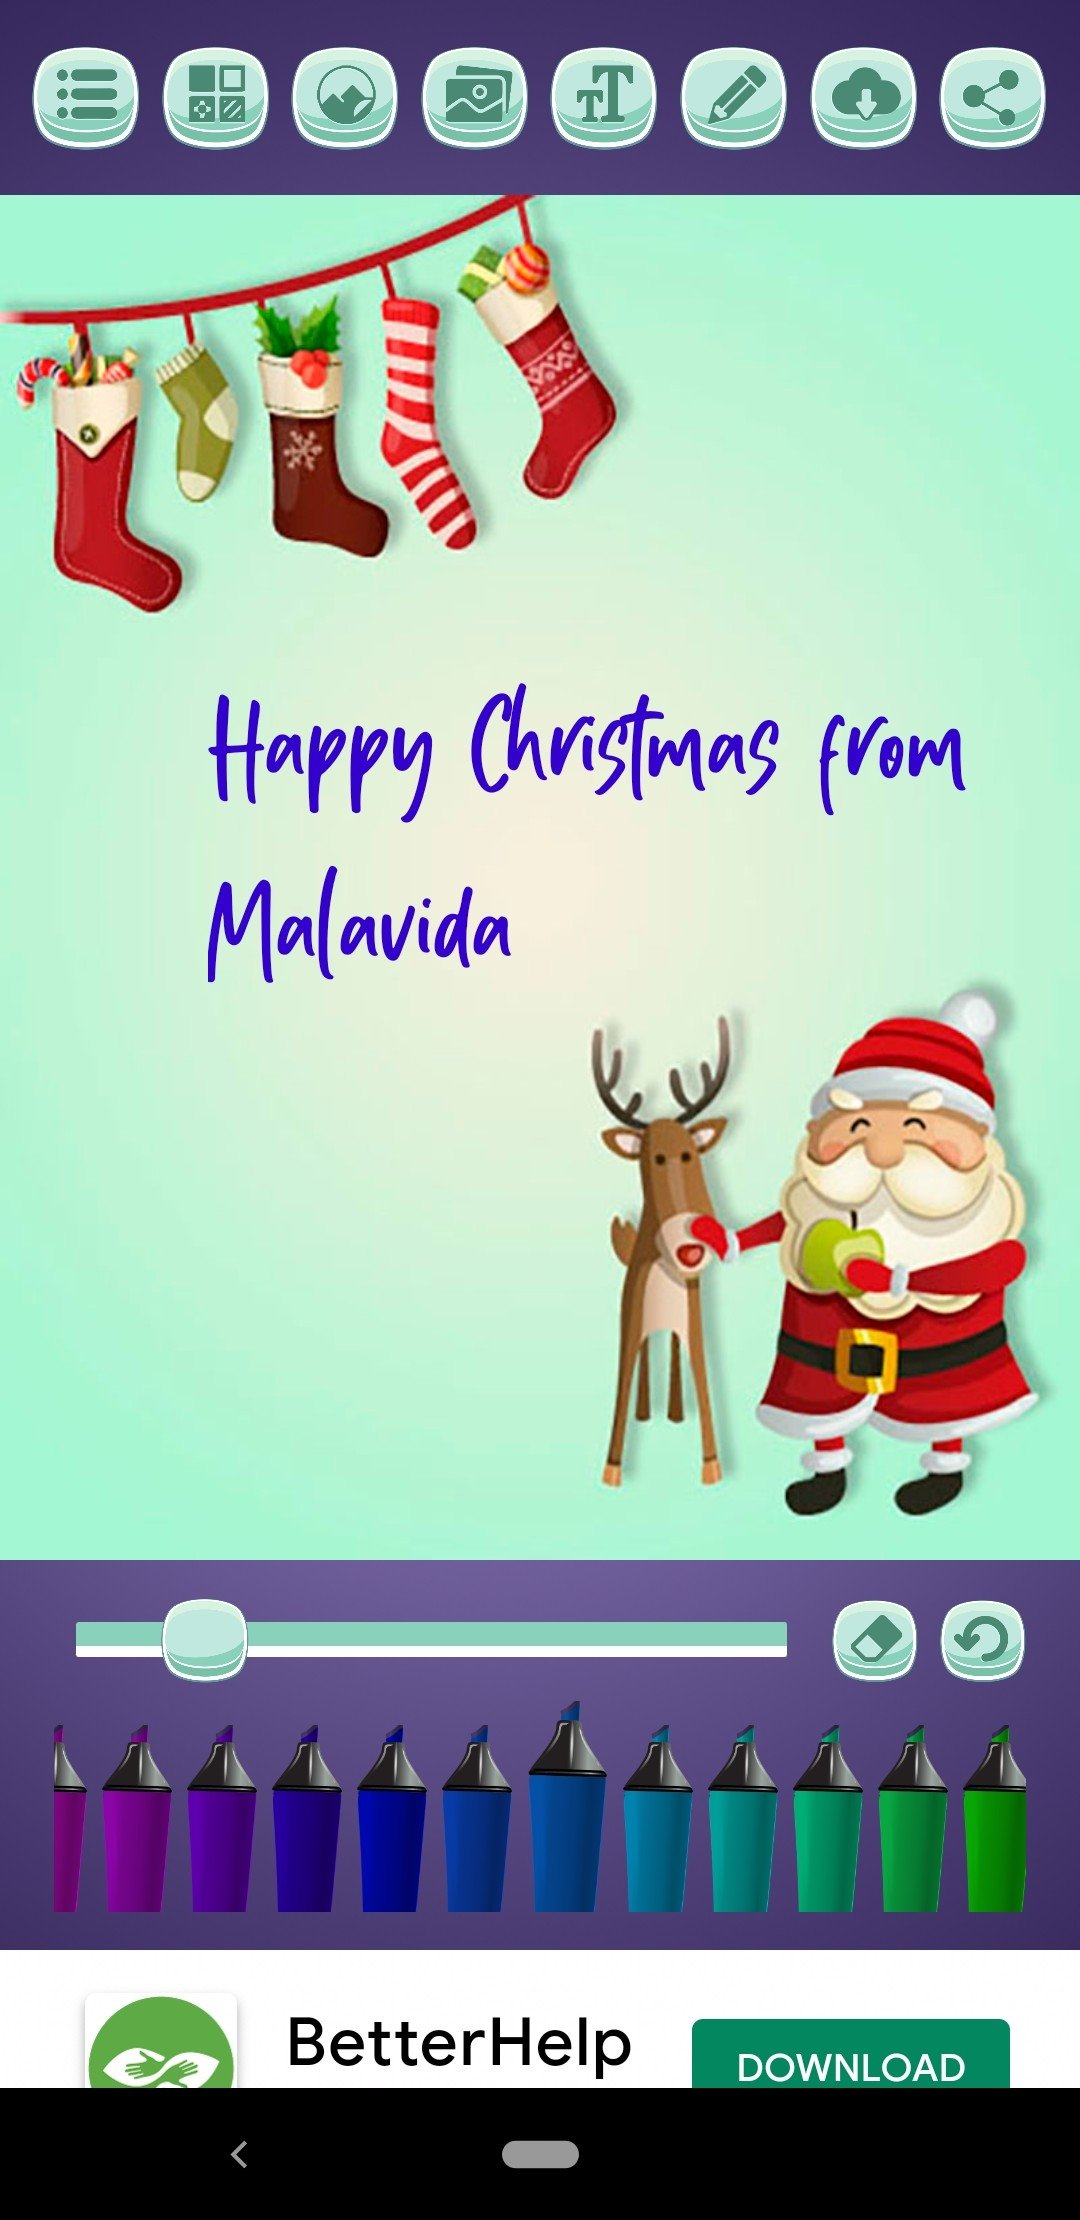 Download Create Christmas Cards 15.11.13 Android - APK Free